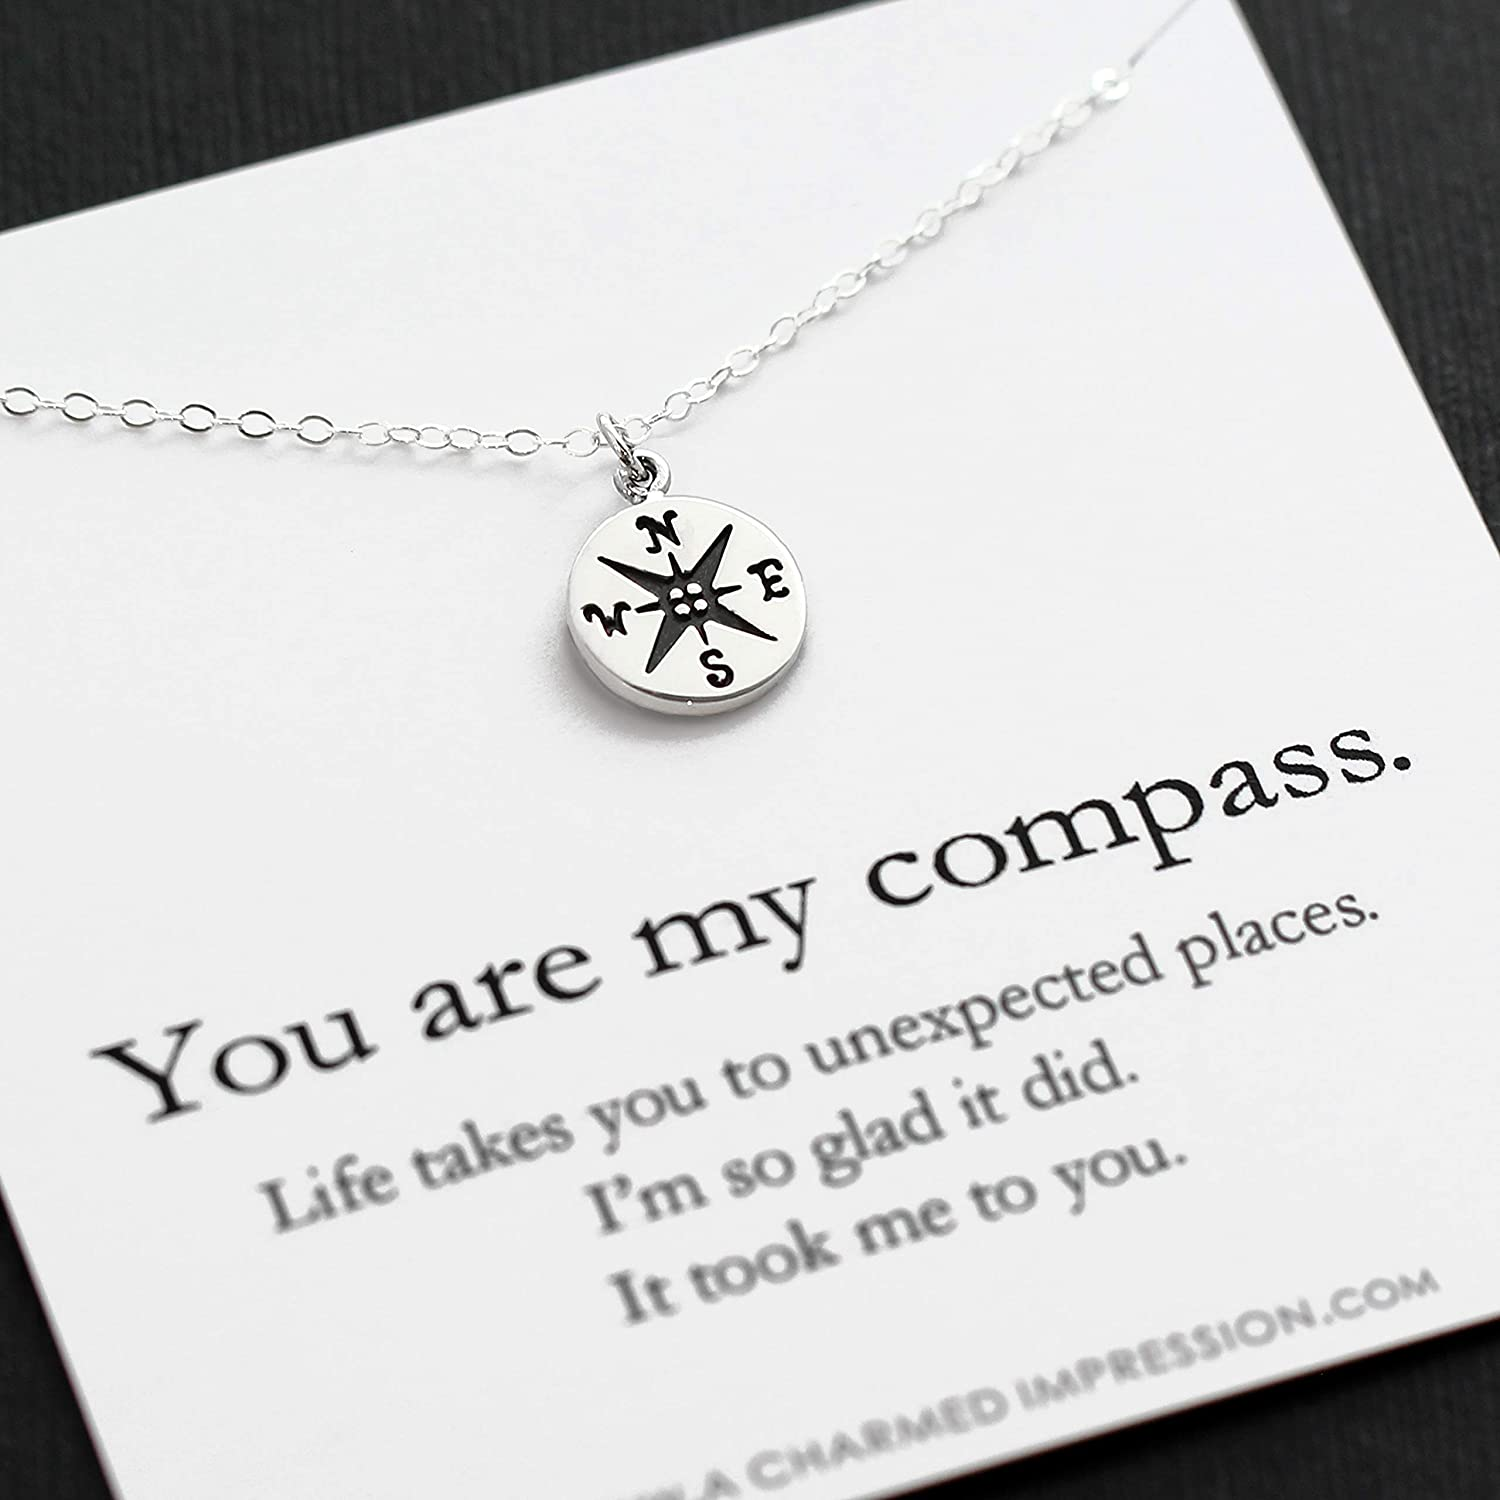 Gift For Wife Girlfriend Best Friend You Are My Compass I D Be Lost Without You Personalized Sterling Silver Charm Necklace Handmade Handcrafted Anniversary Birthday Christmas Handmade